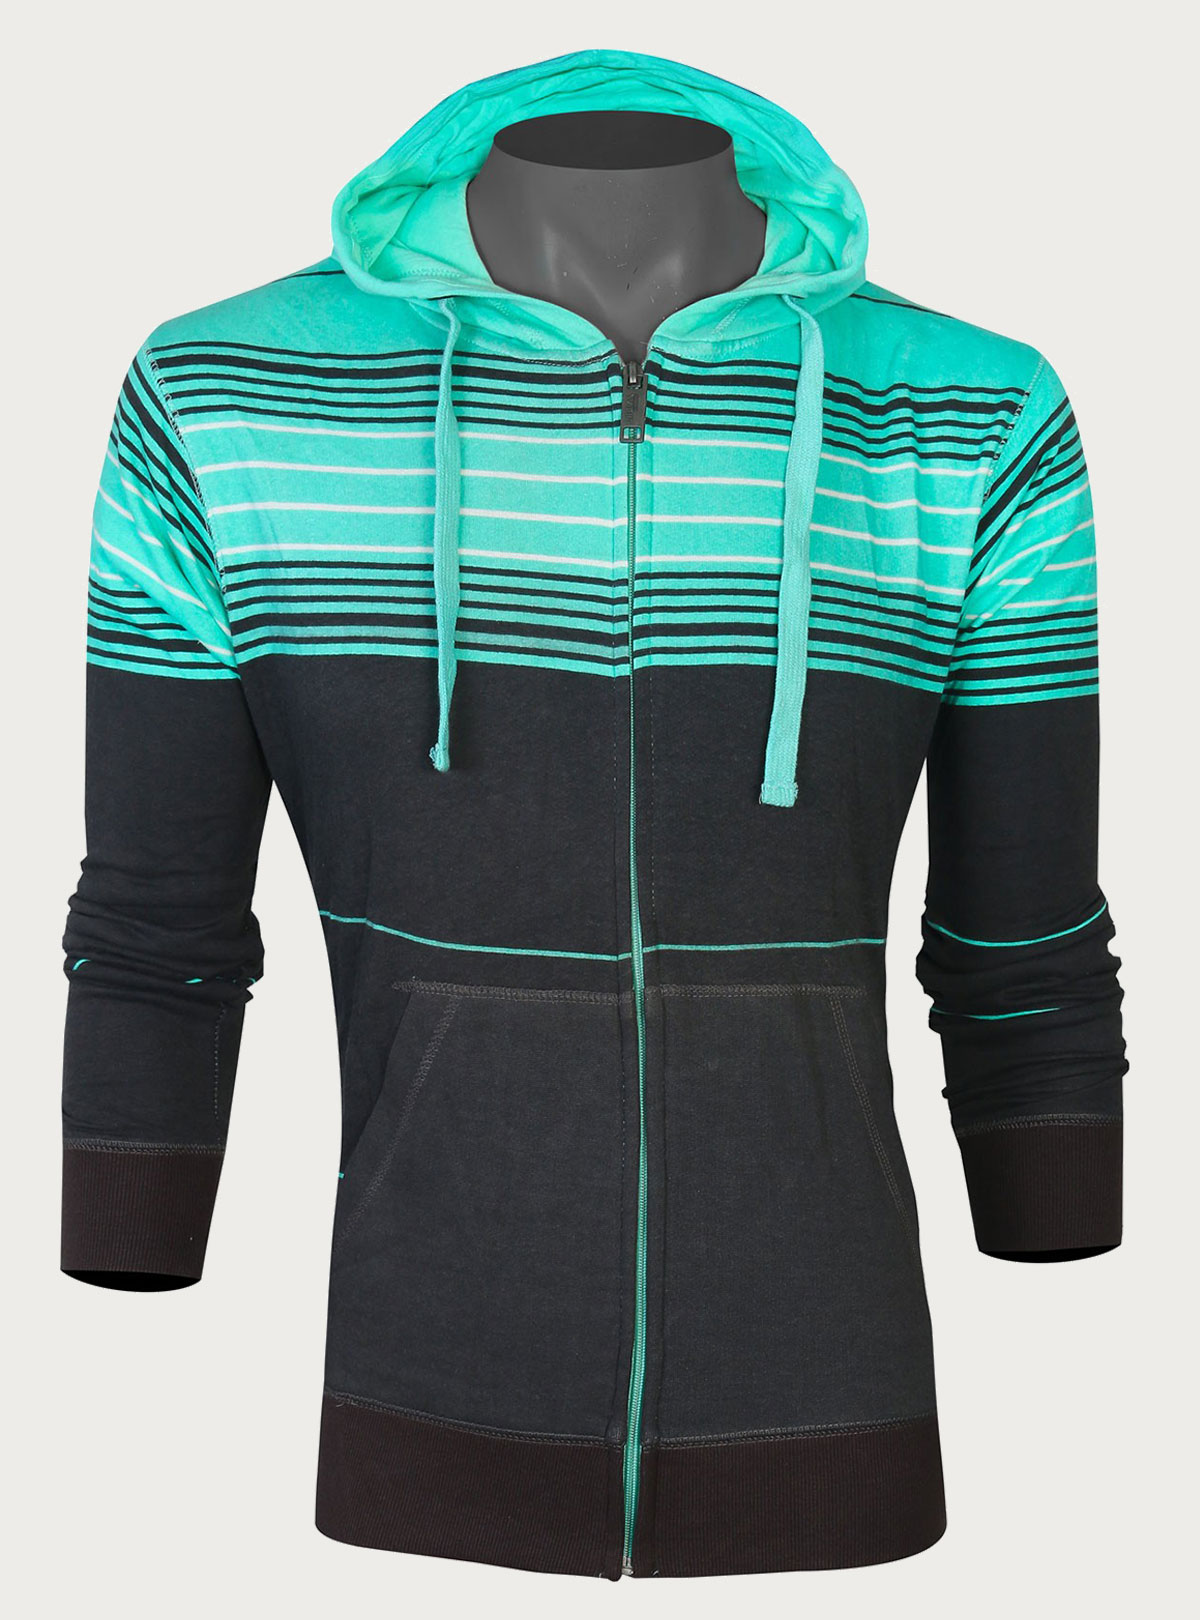 STYLISH HOODIE SWEATER BY URBAN HERITAGE. | Esho.com | Best online ...